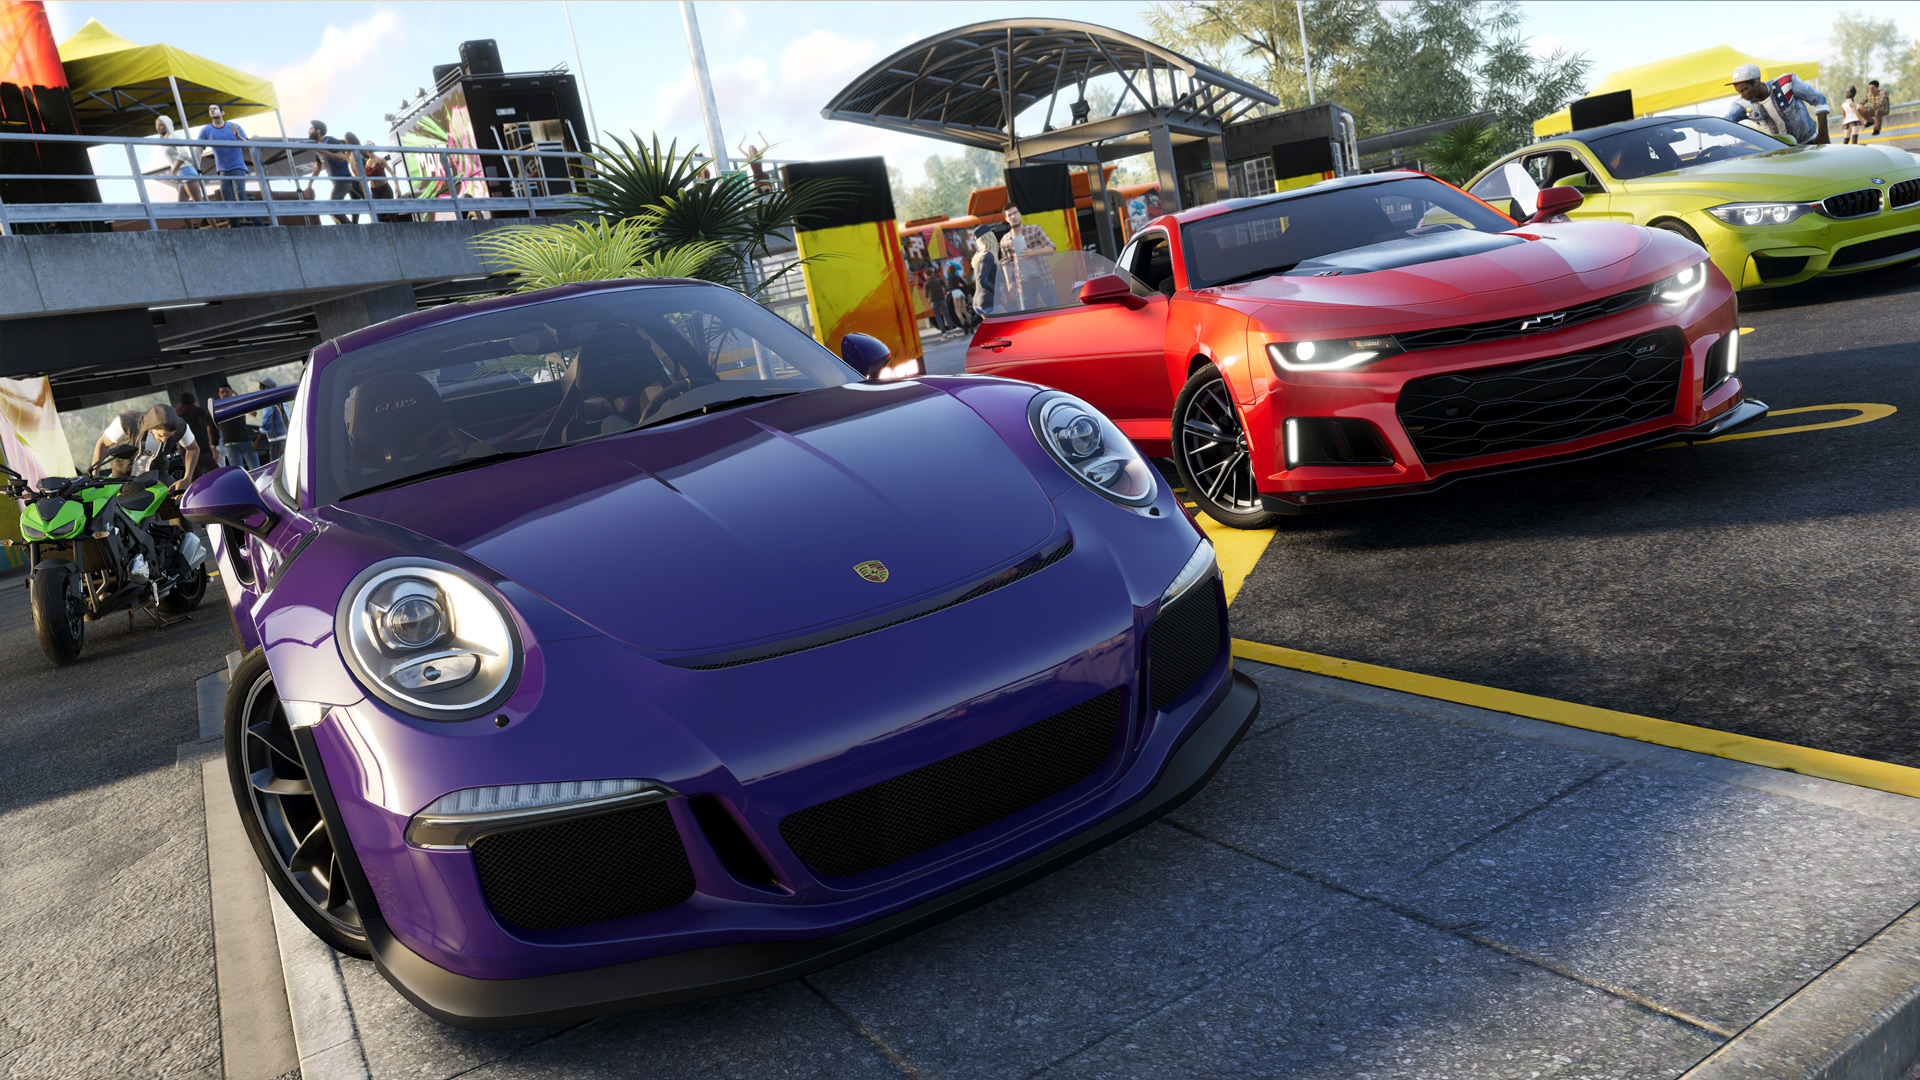 The Crew 2's Release Date Announced, Pre-Order Details Revealed